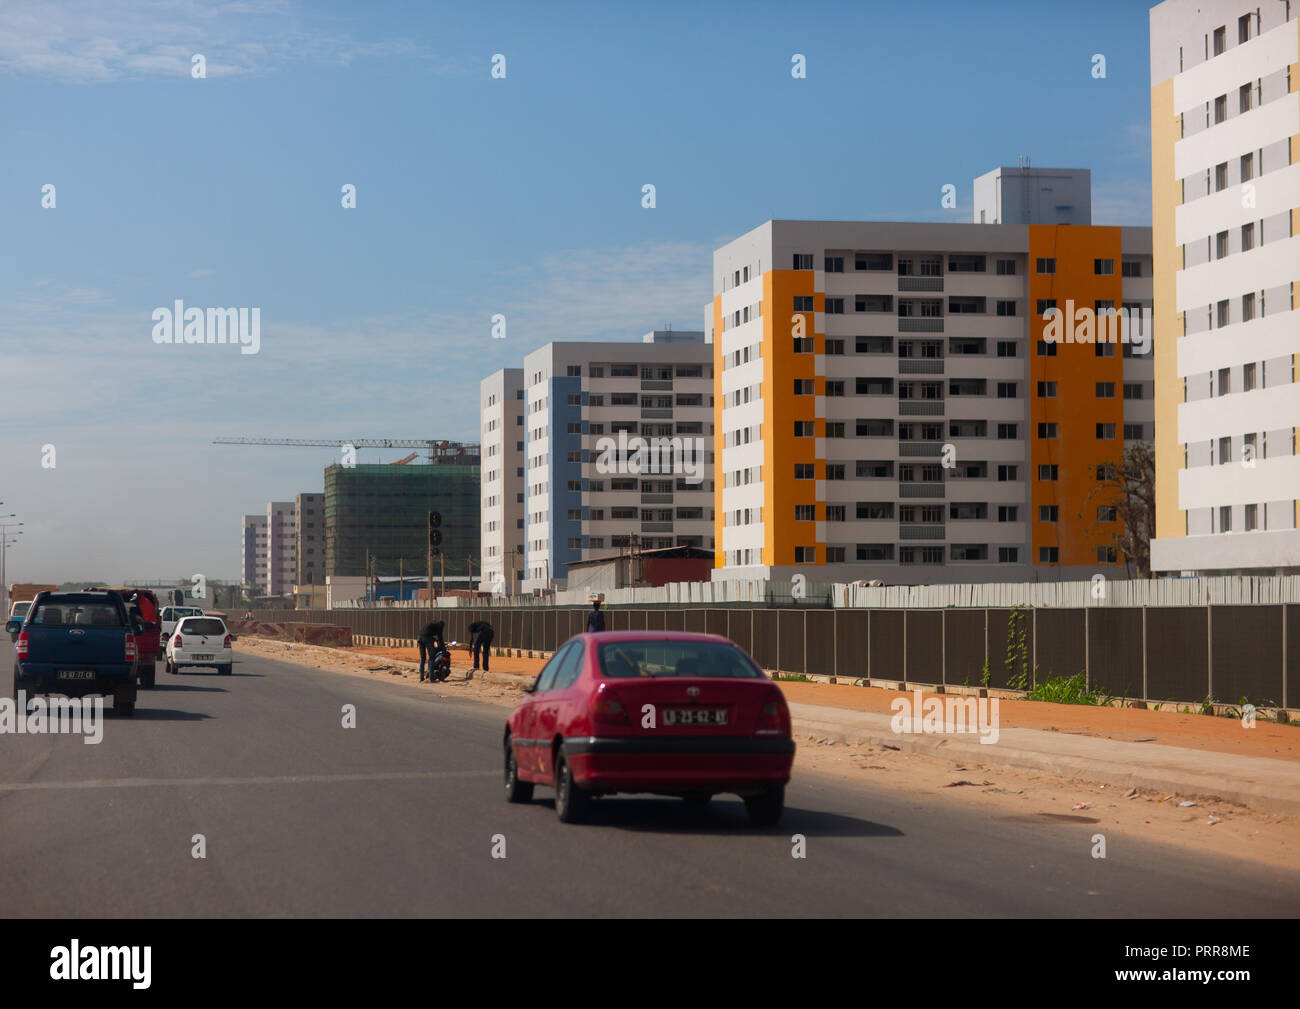 Car on a highway along brand new buildings, Luanda Province, Luanda, Angola - Stock Image